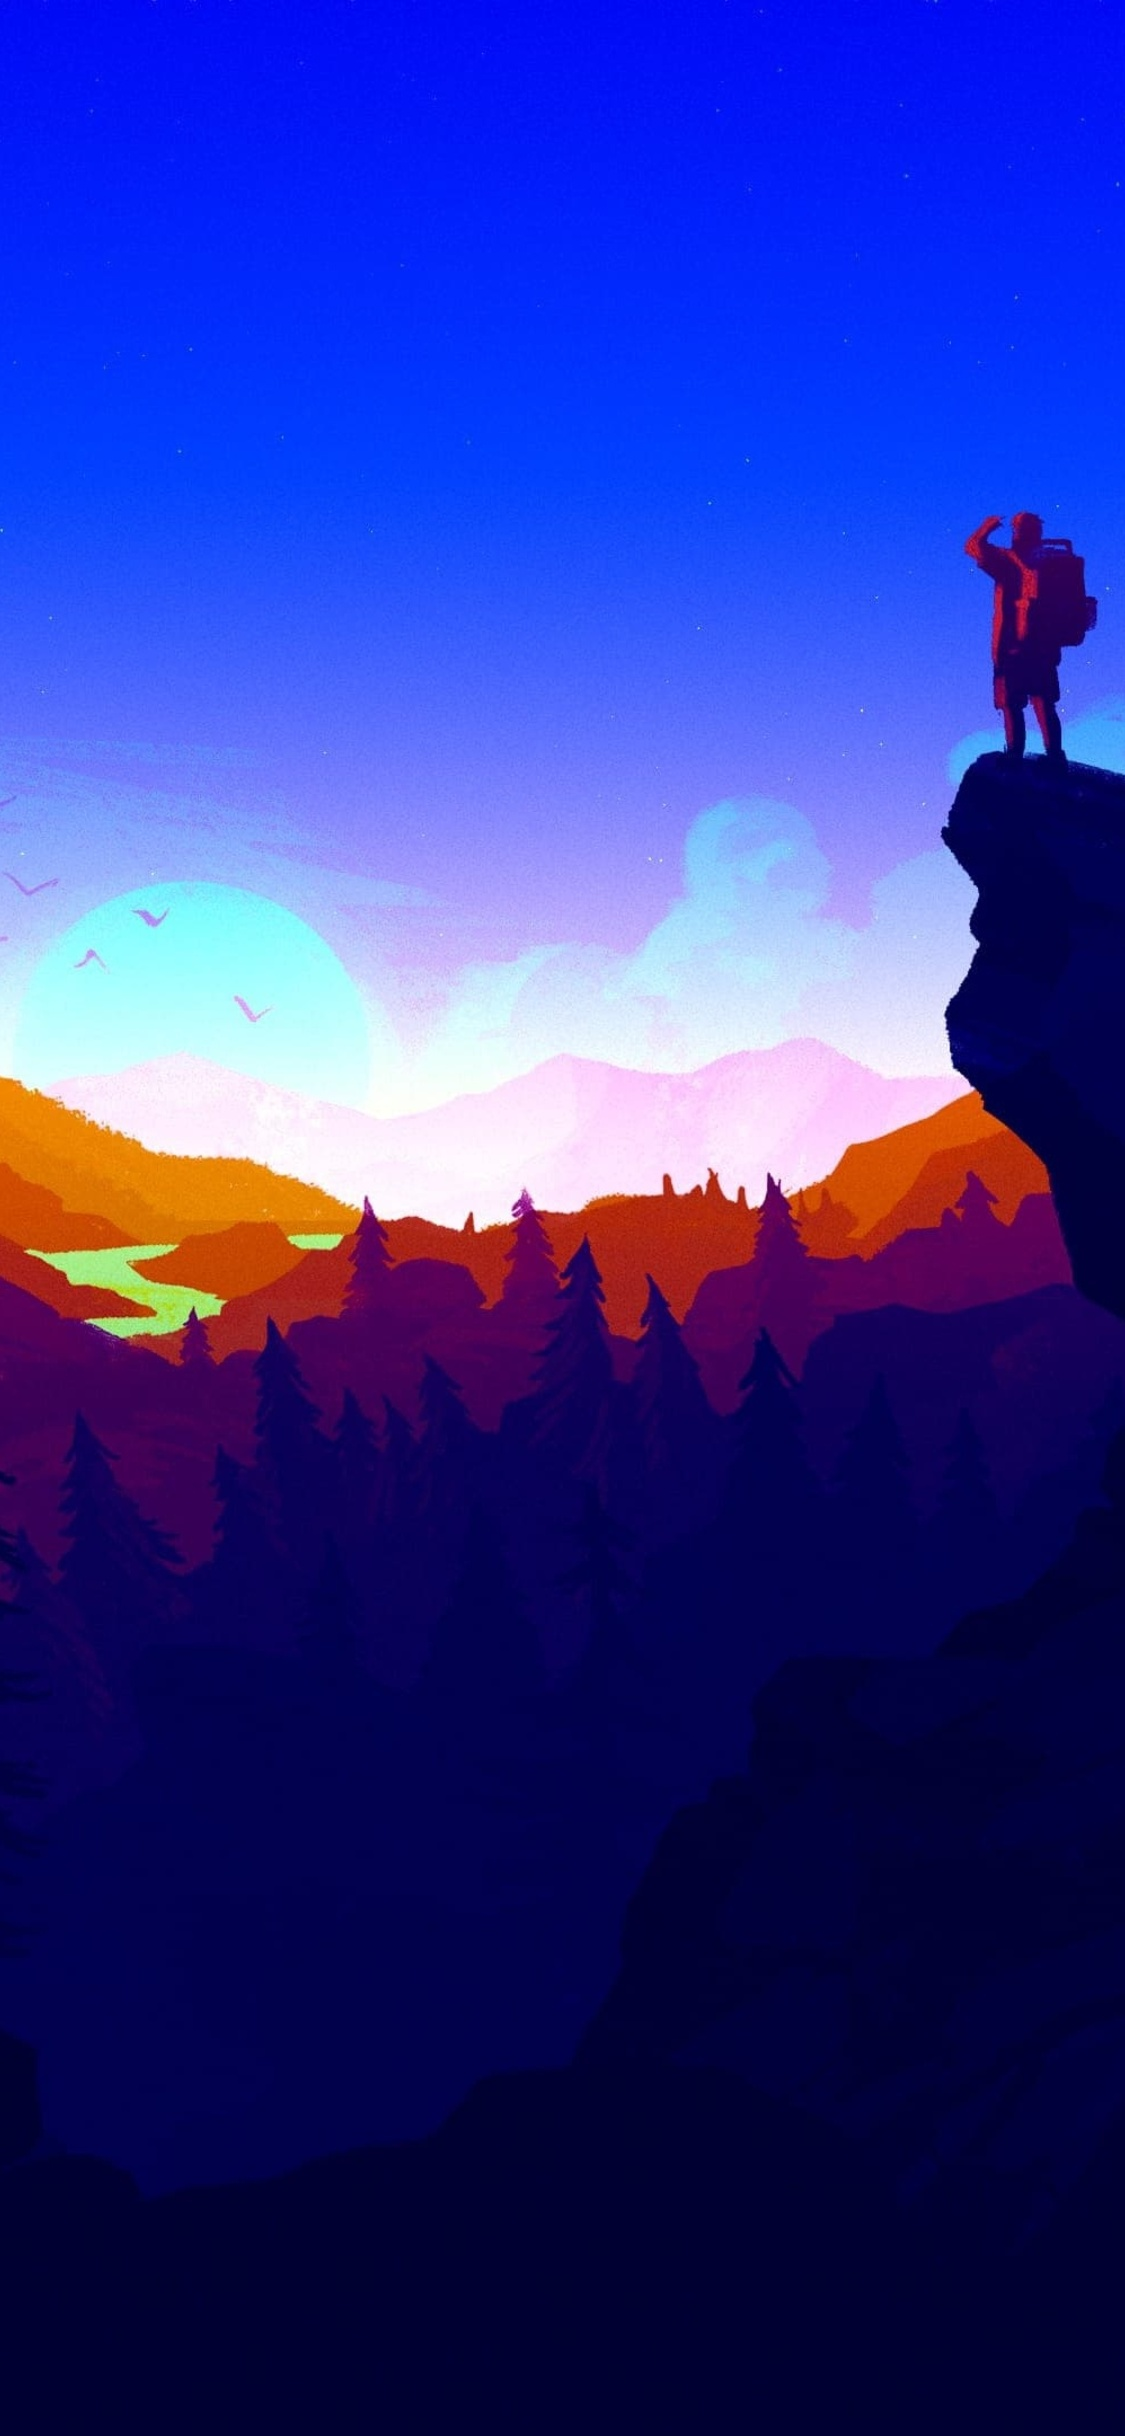 1125x2436 firewatch 4k iphone xs iphone 10 iphone x hd 4k - 4k girl wallpaper for iphone ...